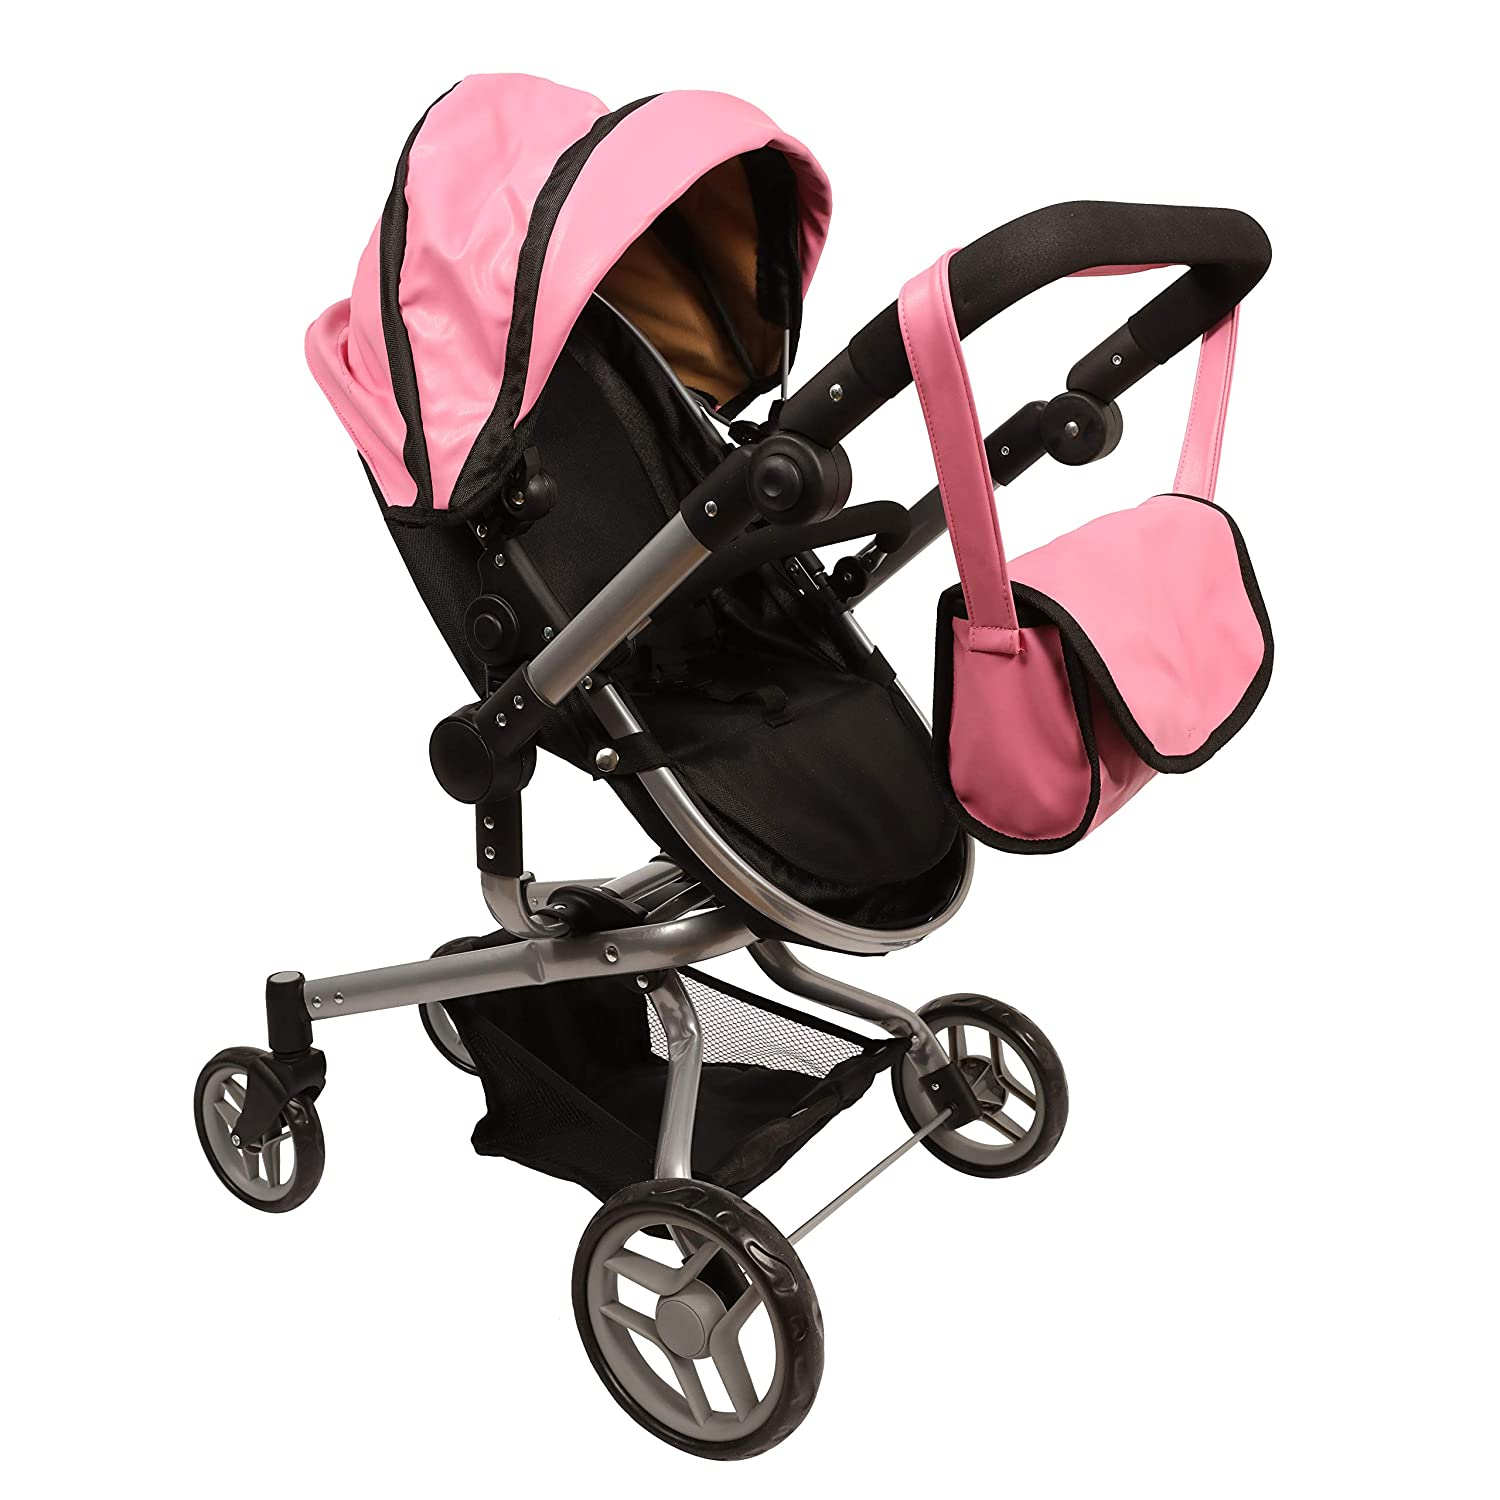 9695 Mommy /& me 2 in 1 Deluxe Leather Doll Stroller Extra Tall 32 HIGH View All Photos